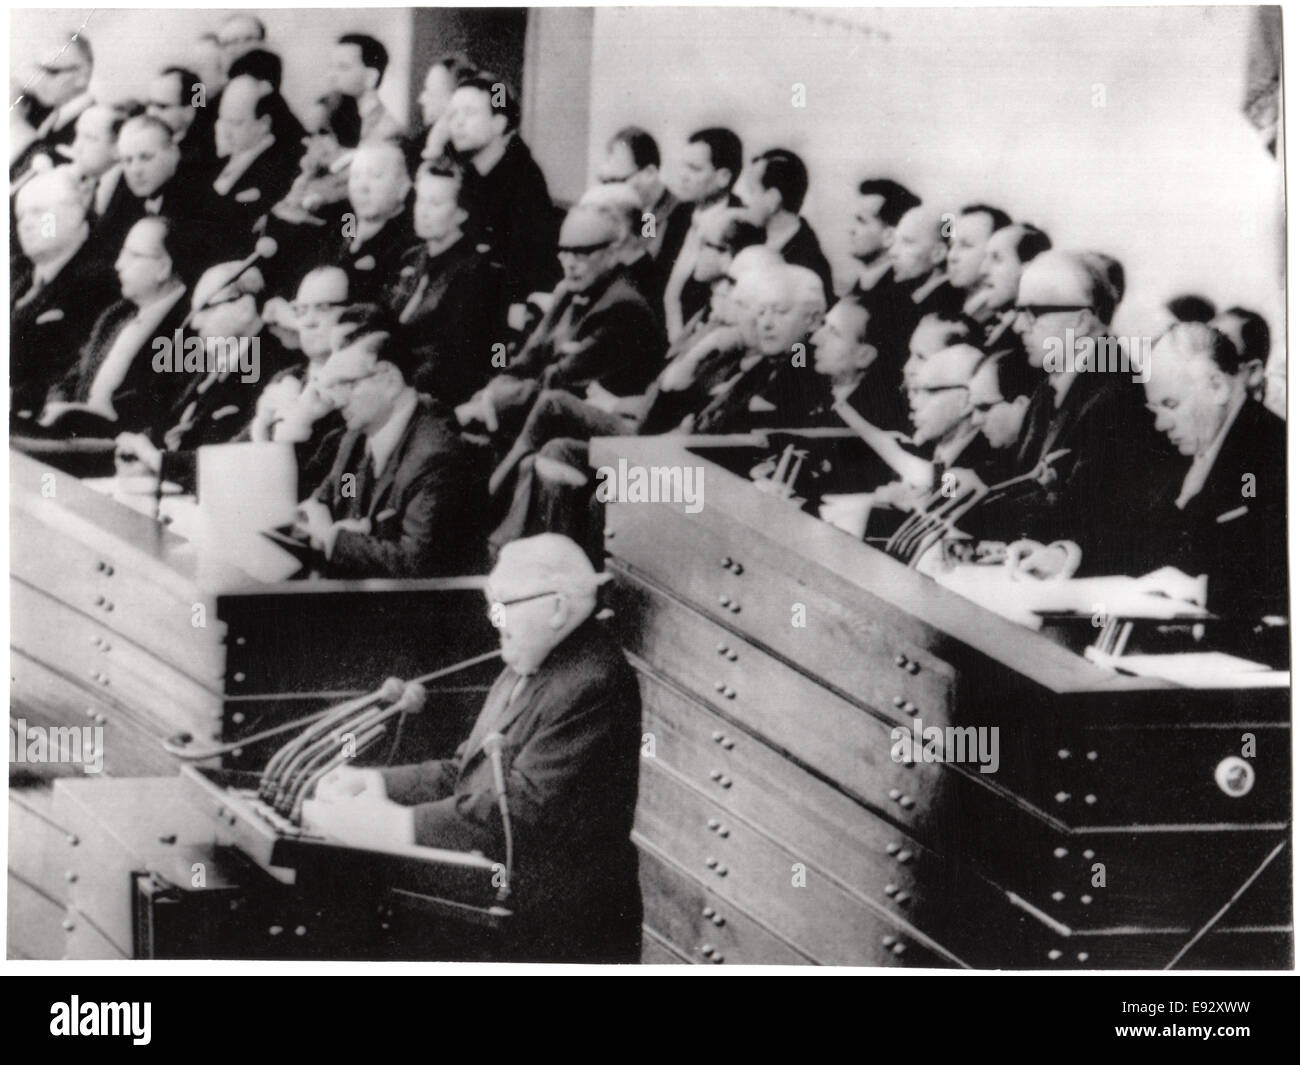 West German Chancellor Ludwig Erhard Speaking to Parliament, Bonn, West Germany, November 10, 1965 - Stock Image